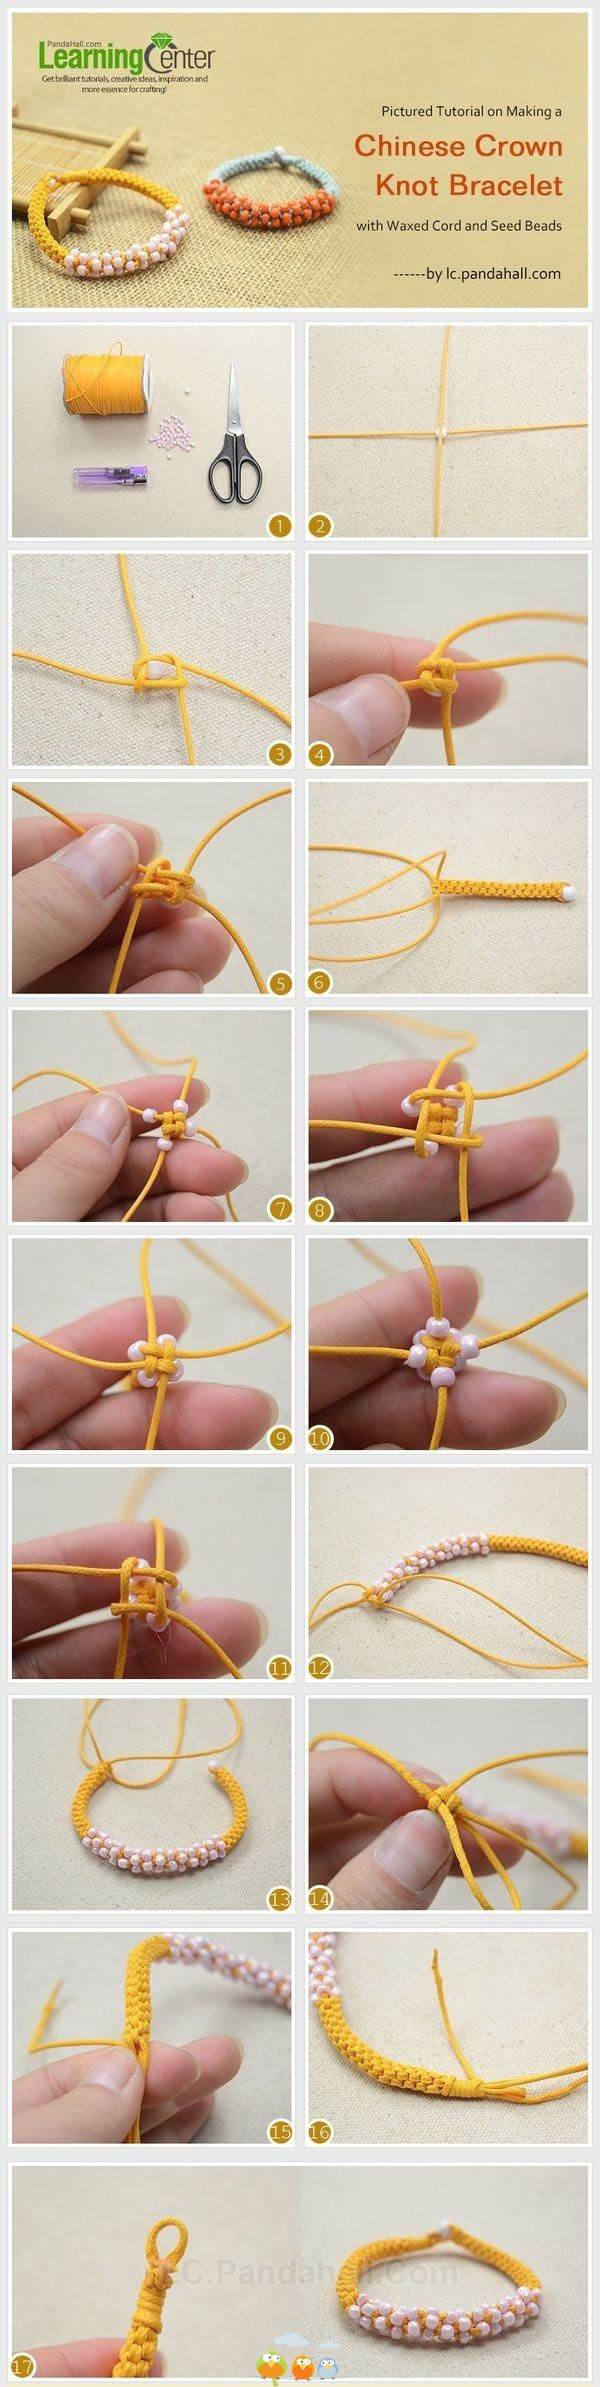 Chinese braided bracelet!